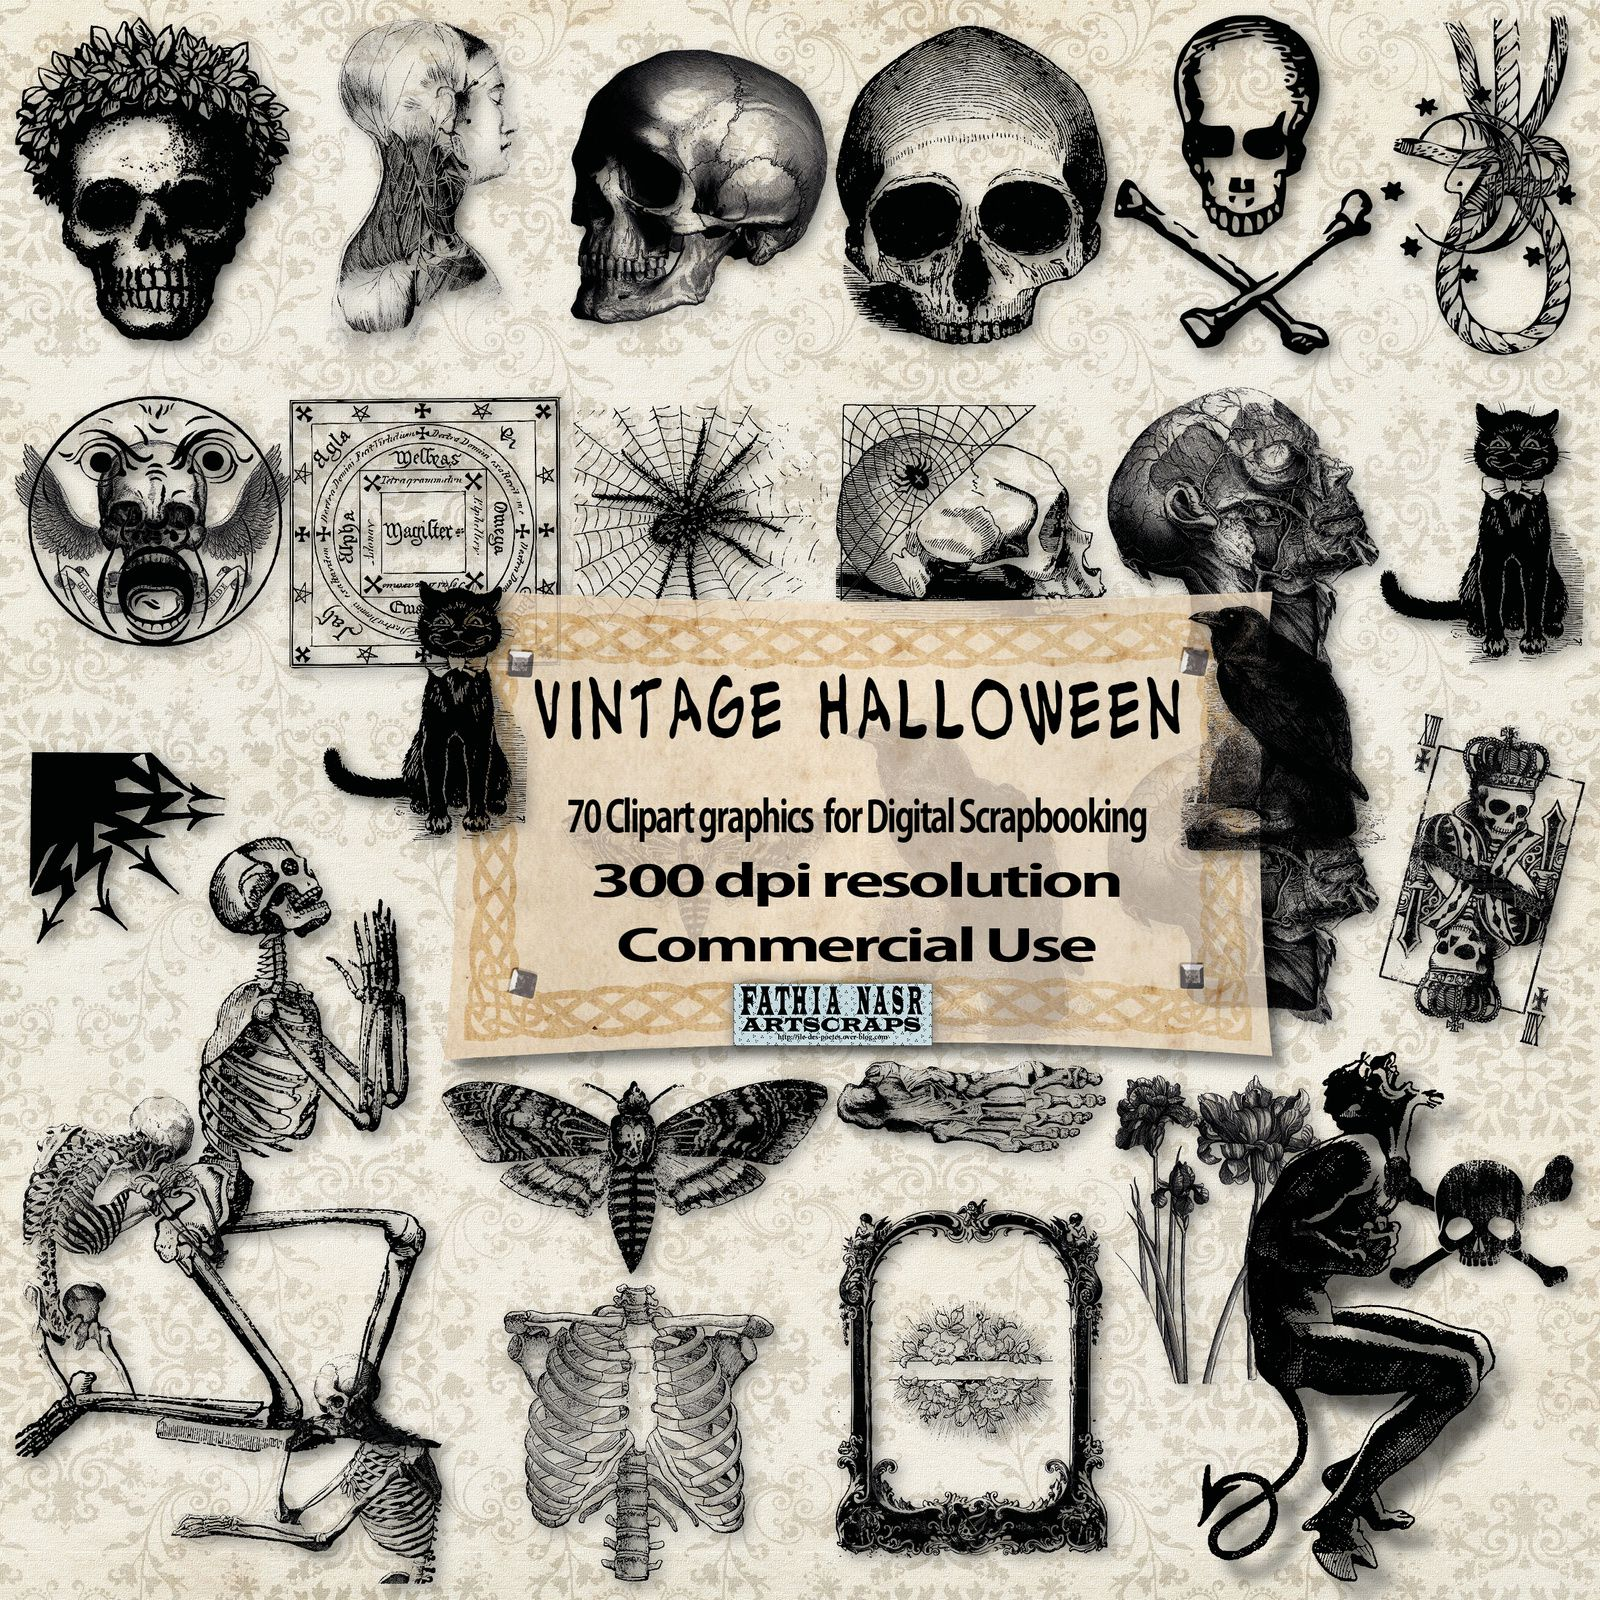 Gothic-Halloween-Kit scrapbooking-digital images-Commercial-Use-Raven-Crow-Owl-Skull-Cranes-Skeleton-Squelettes-